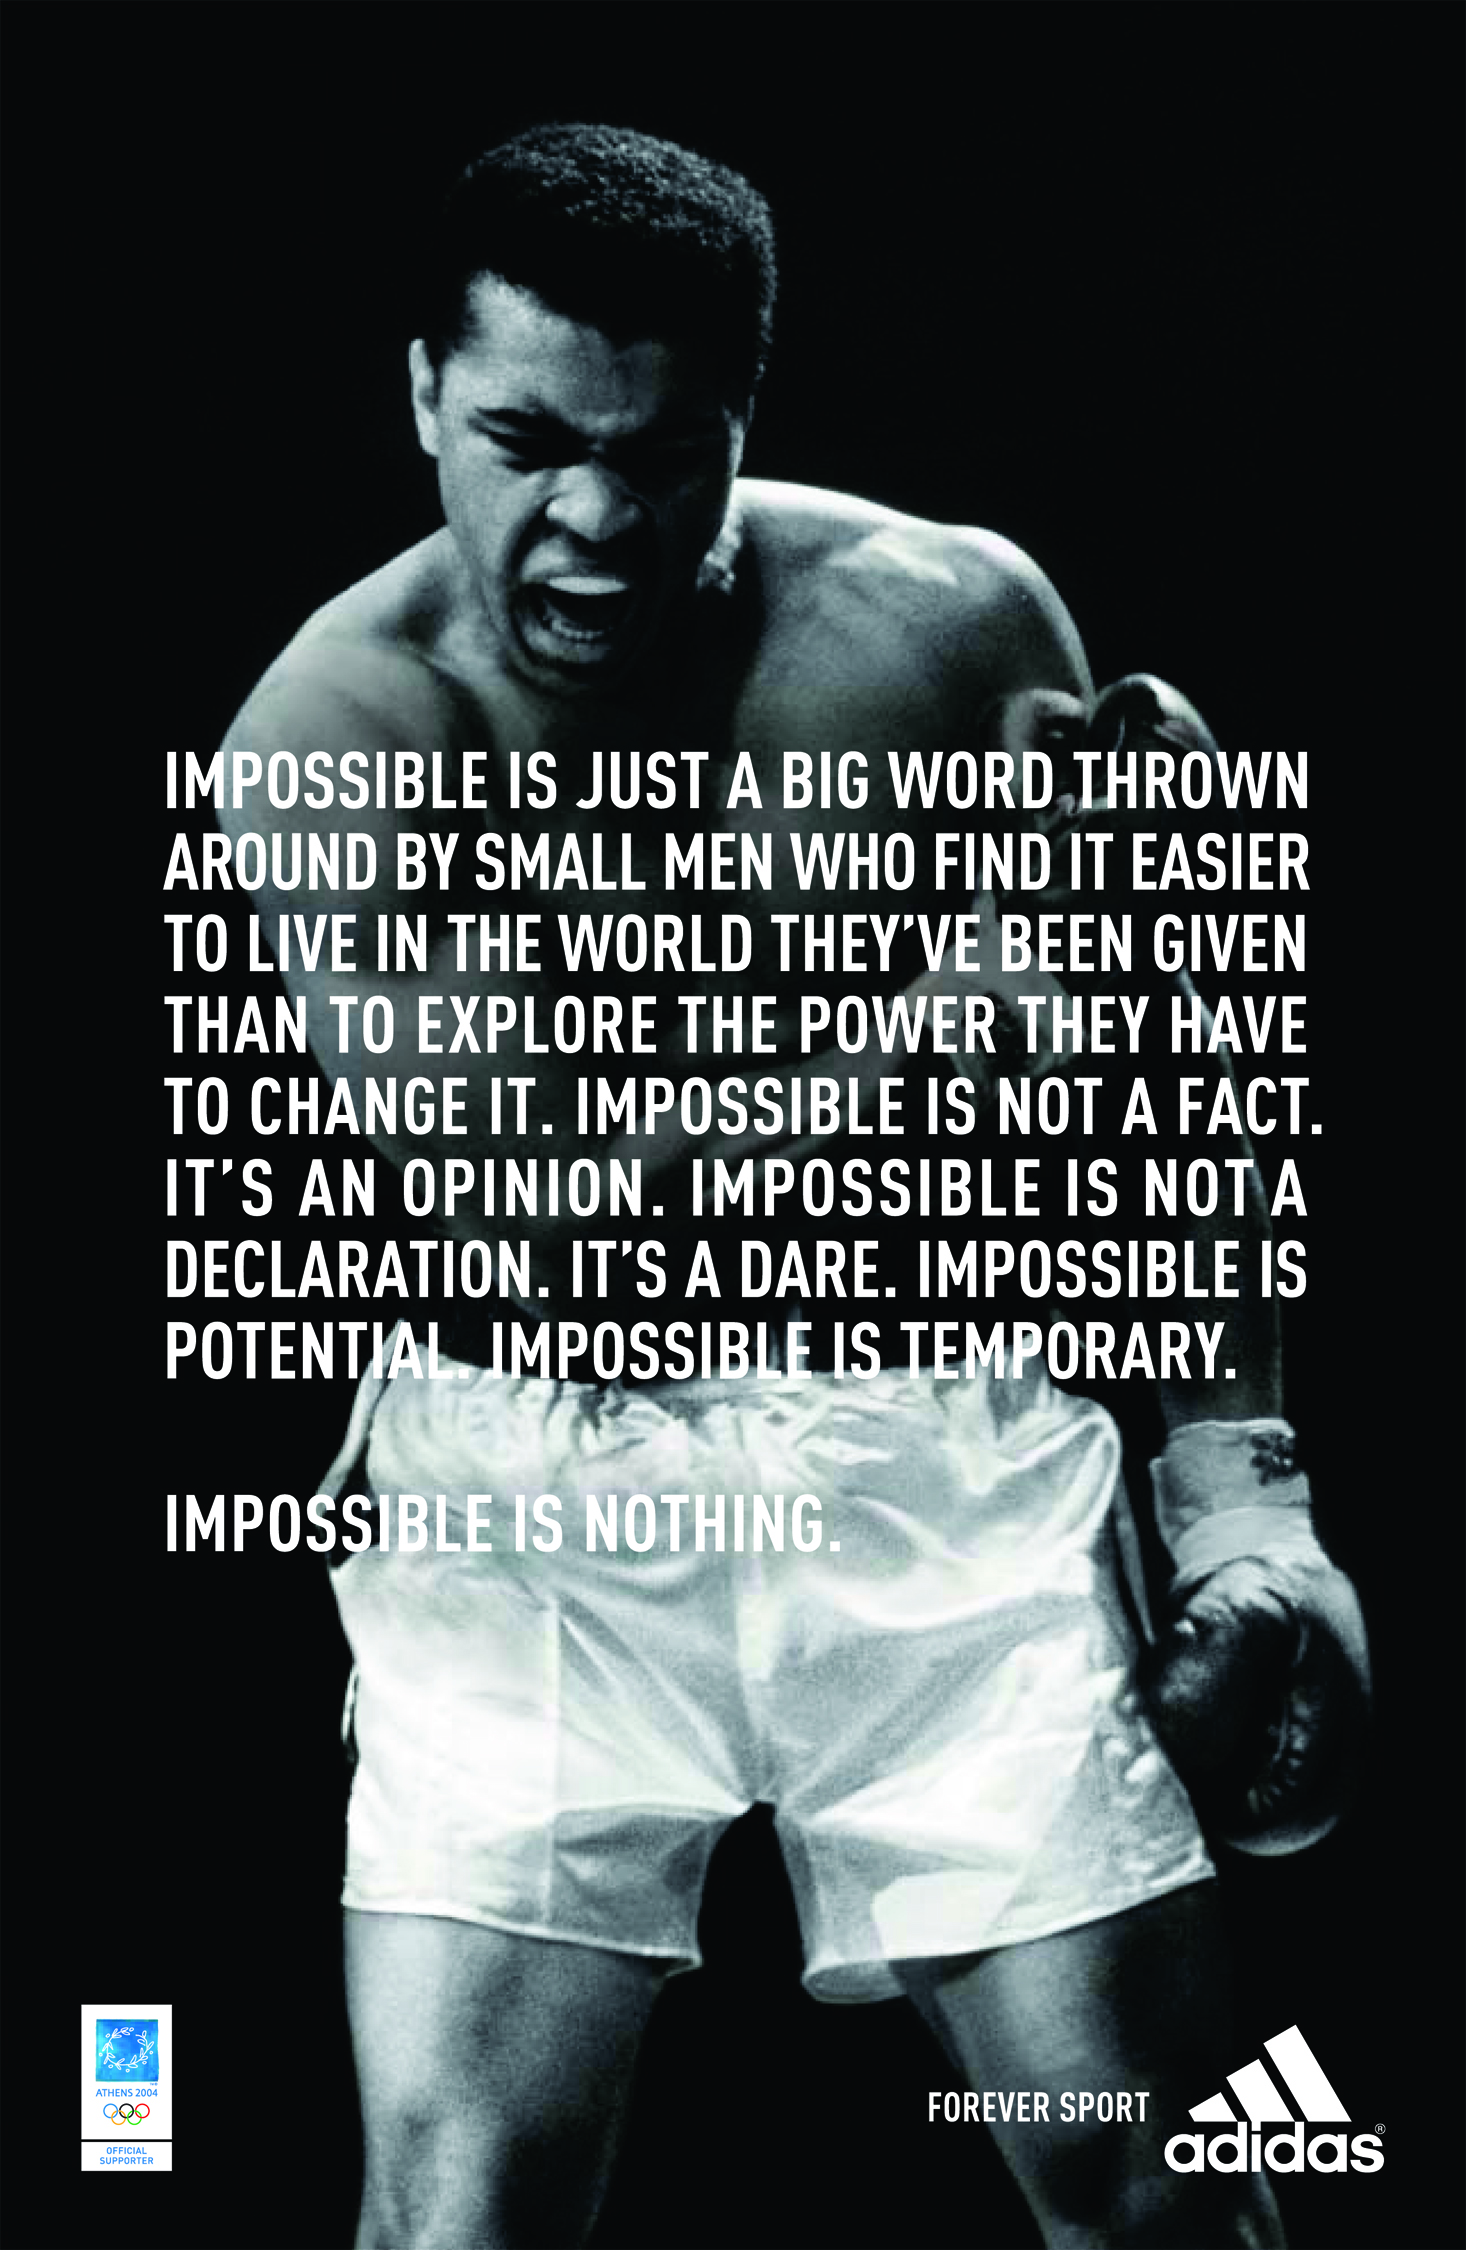 The internet has attached these words to one of the most famous male athletes of all time, when the truth is they came from an ad written by WNW Member  Aimee Lehto Schewe , 25 at the time.